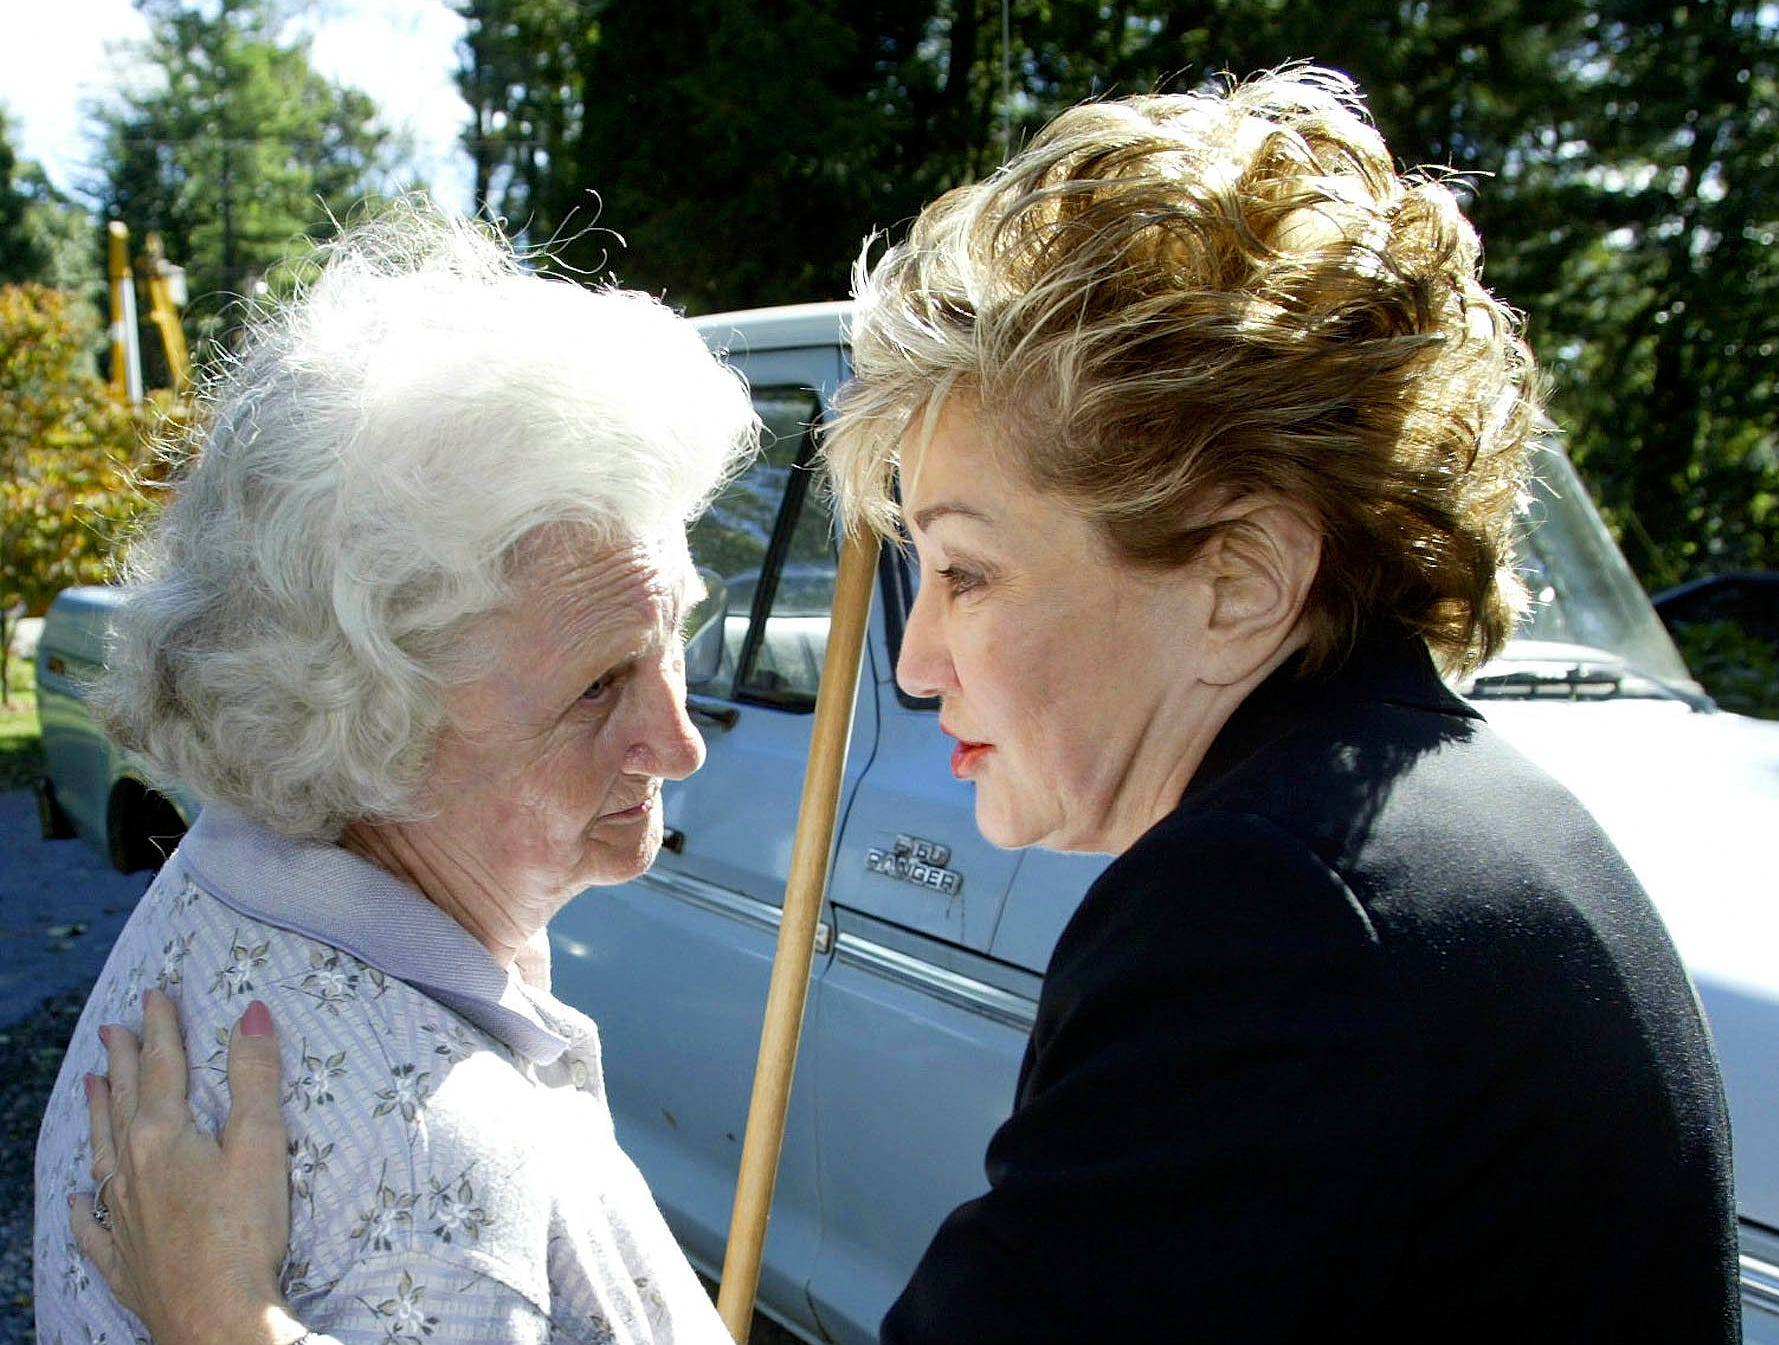 Sen. Elizabeth Dole, R-N.C., right, consoles Mary Hoxit, left, on Sept. 18, 2004, after the remnants of Hurricane Ivan damaged her home in East Flat Rock.